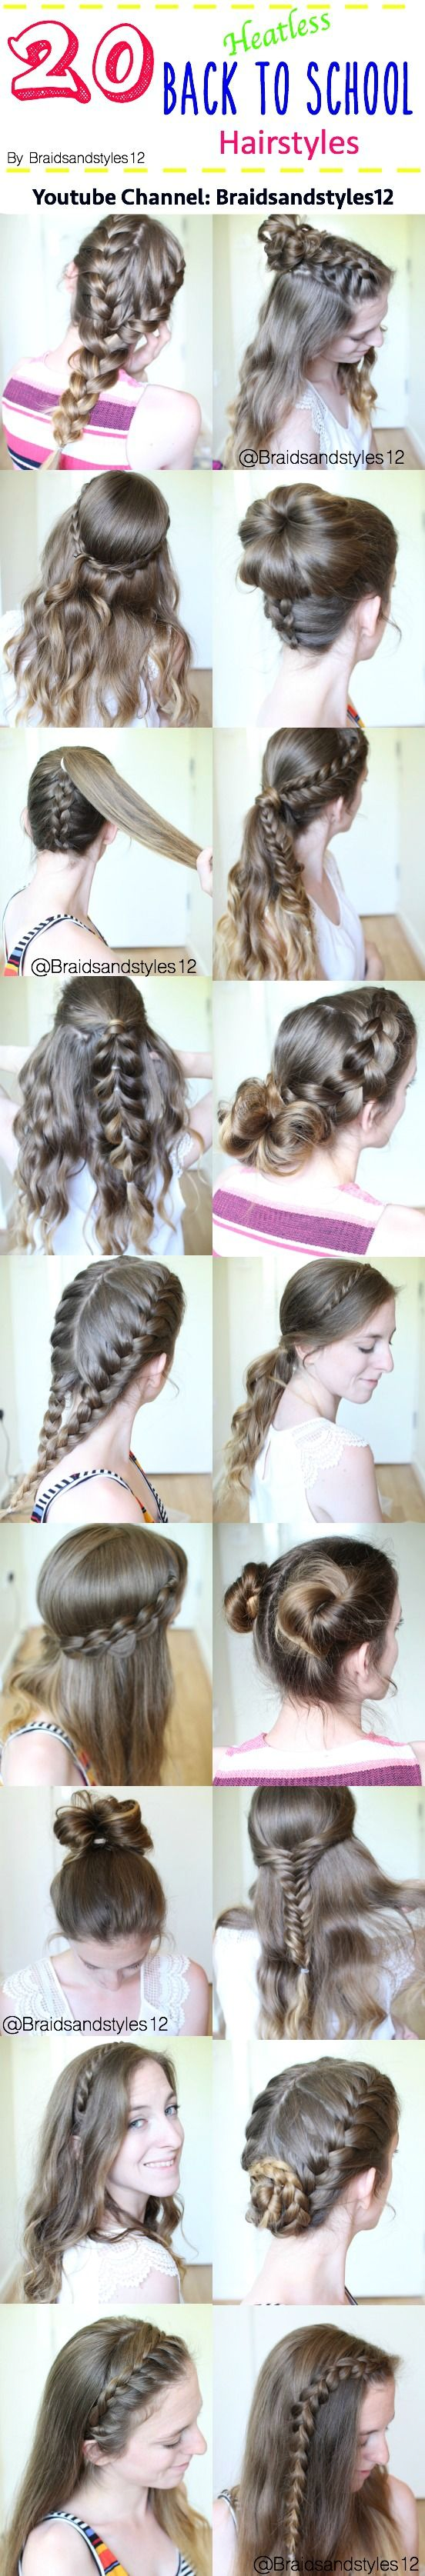 Heatless Back to School Hairstyles / Back to School Ideas  by Braidsandstyles12. Hair Tutorial : https://www.youtube.com/watch?v=kqEhAIuJA1g or search Braidsandstyles12 on Youtube.